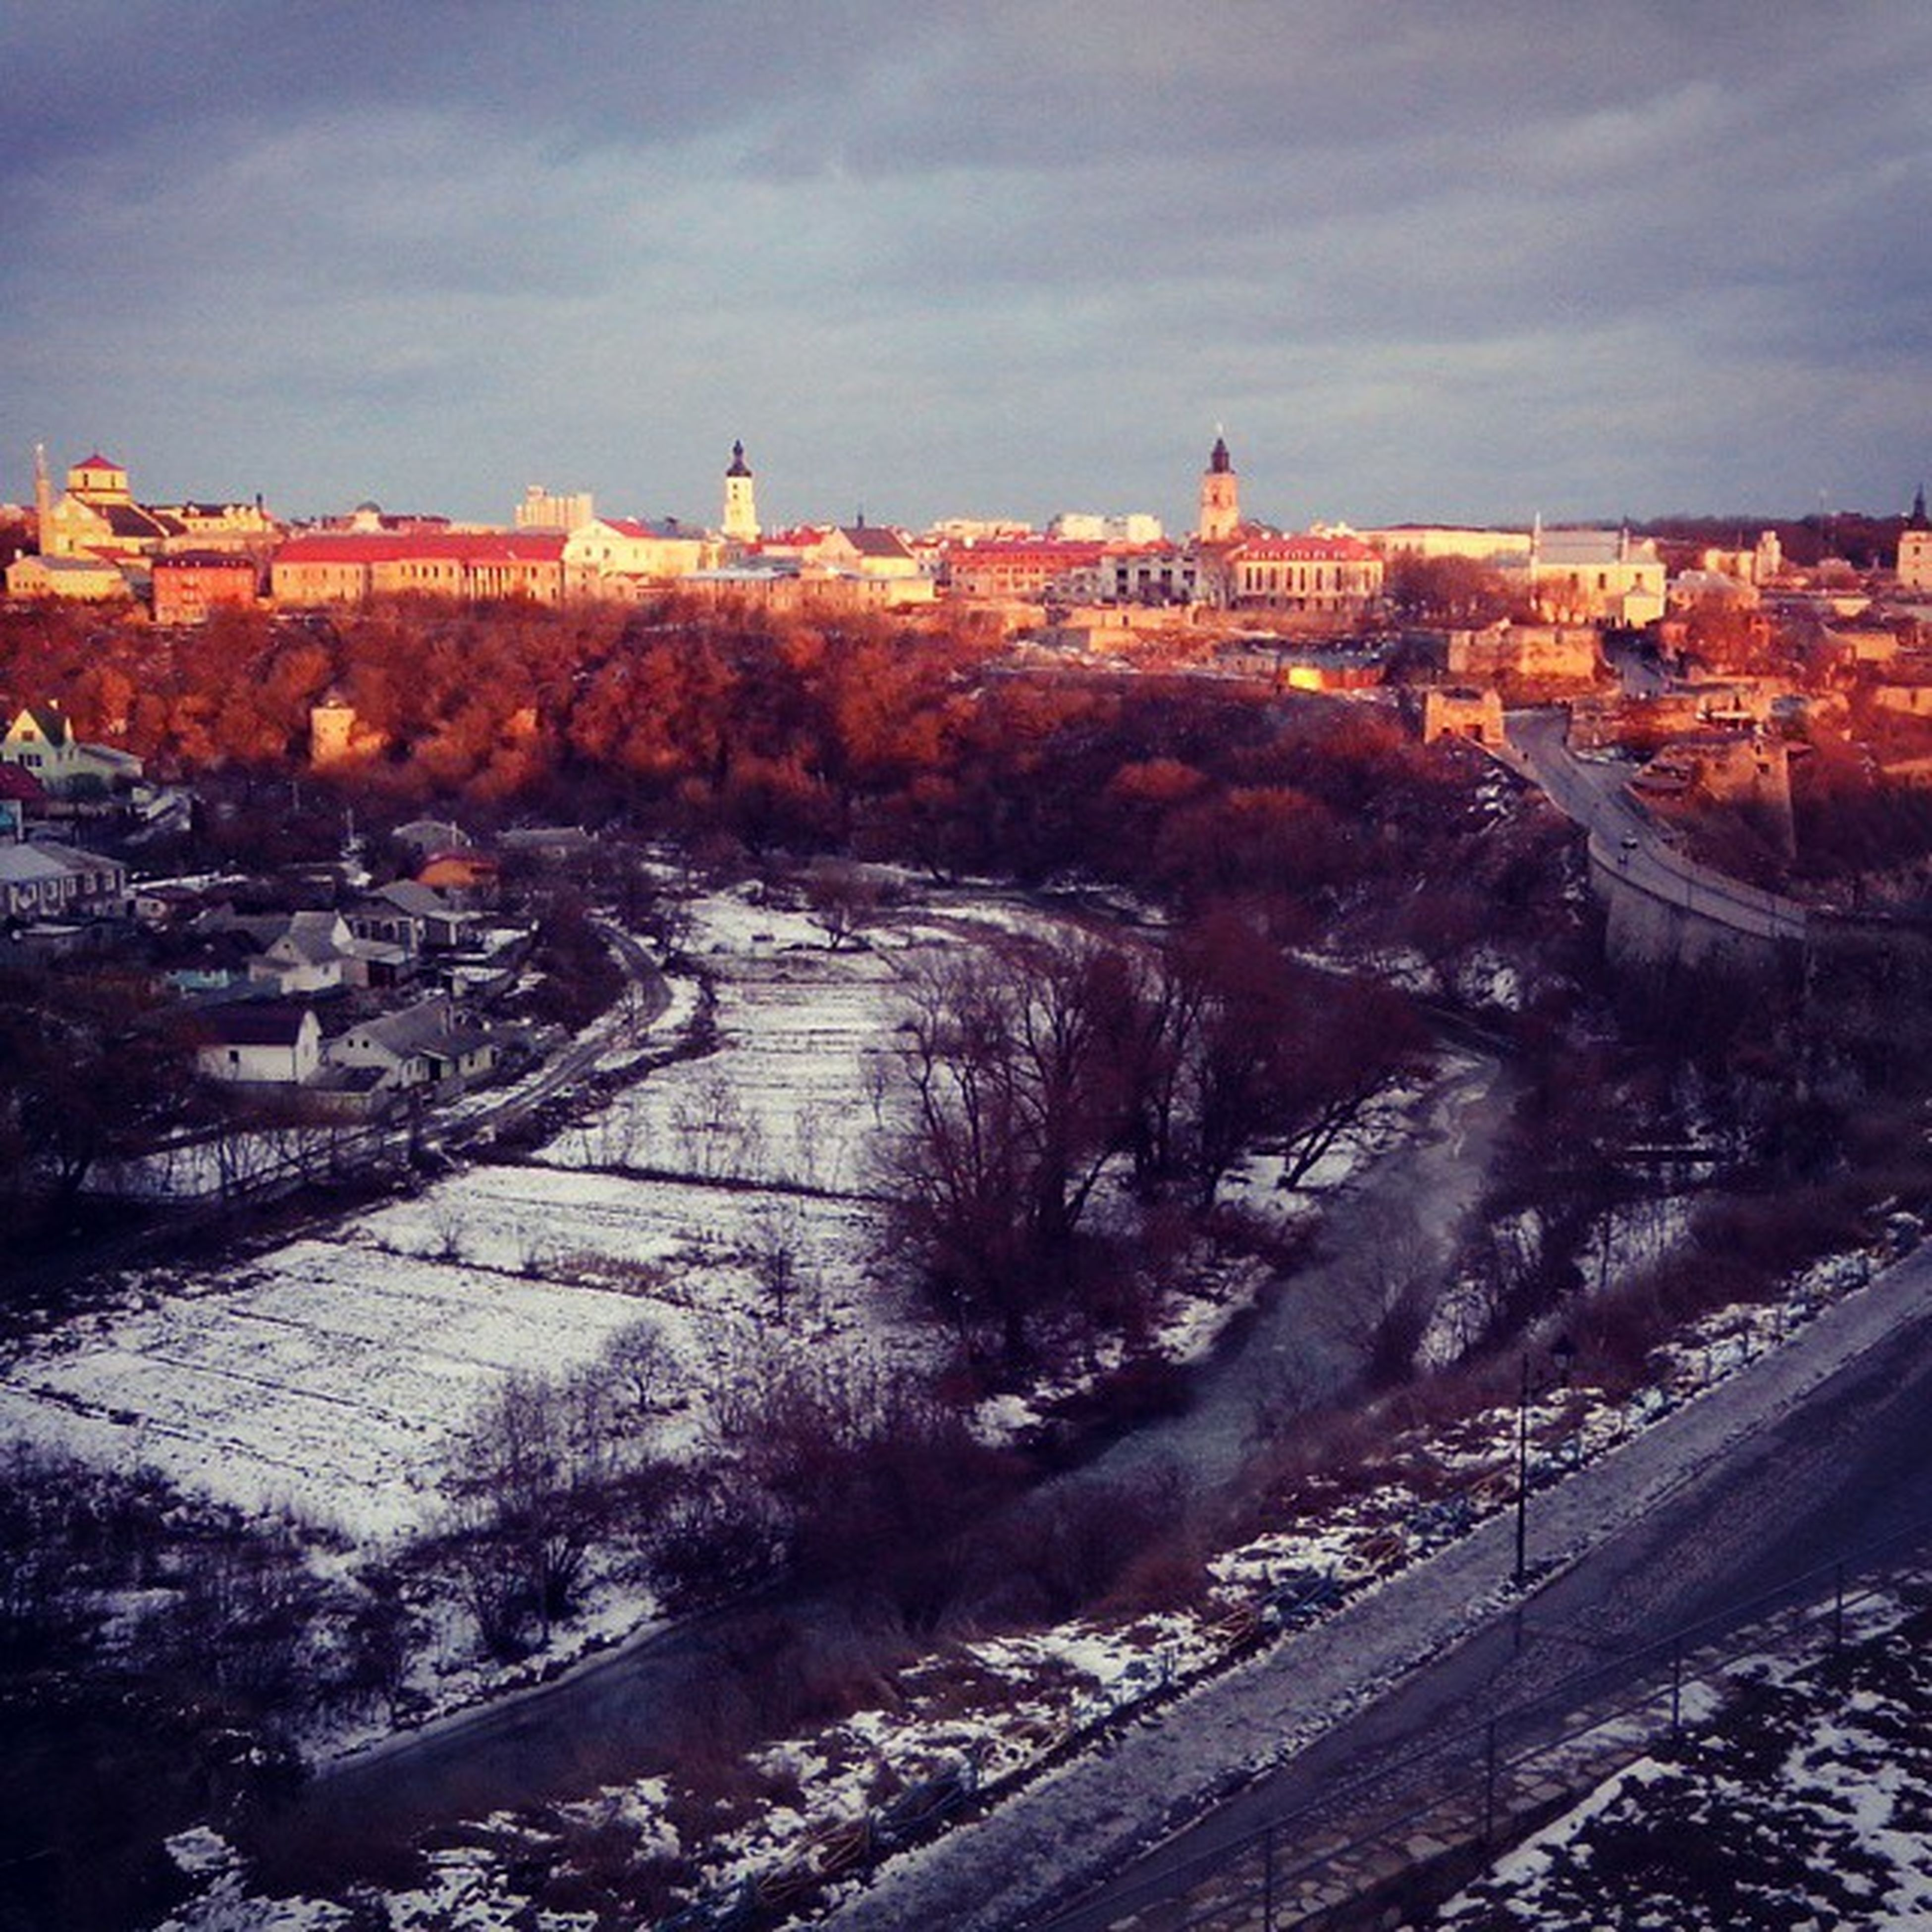 building exterior, architecture, built structure, sky, house, snow, winter, residential structure, season, cold temperature, residential building, town, high angle view, residential district, city, cloud - sky, nature, outdoors, sunset, tree